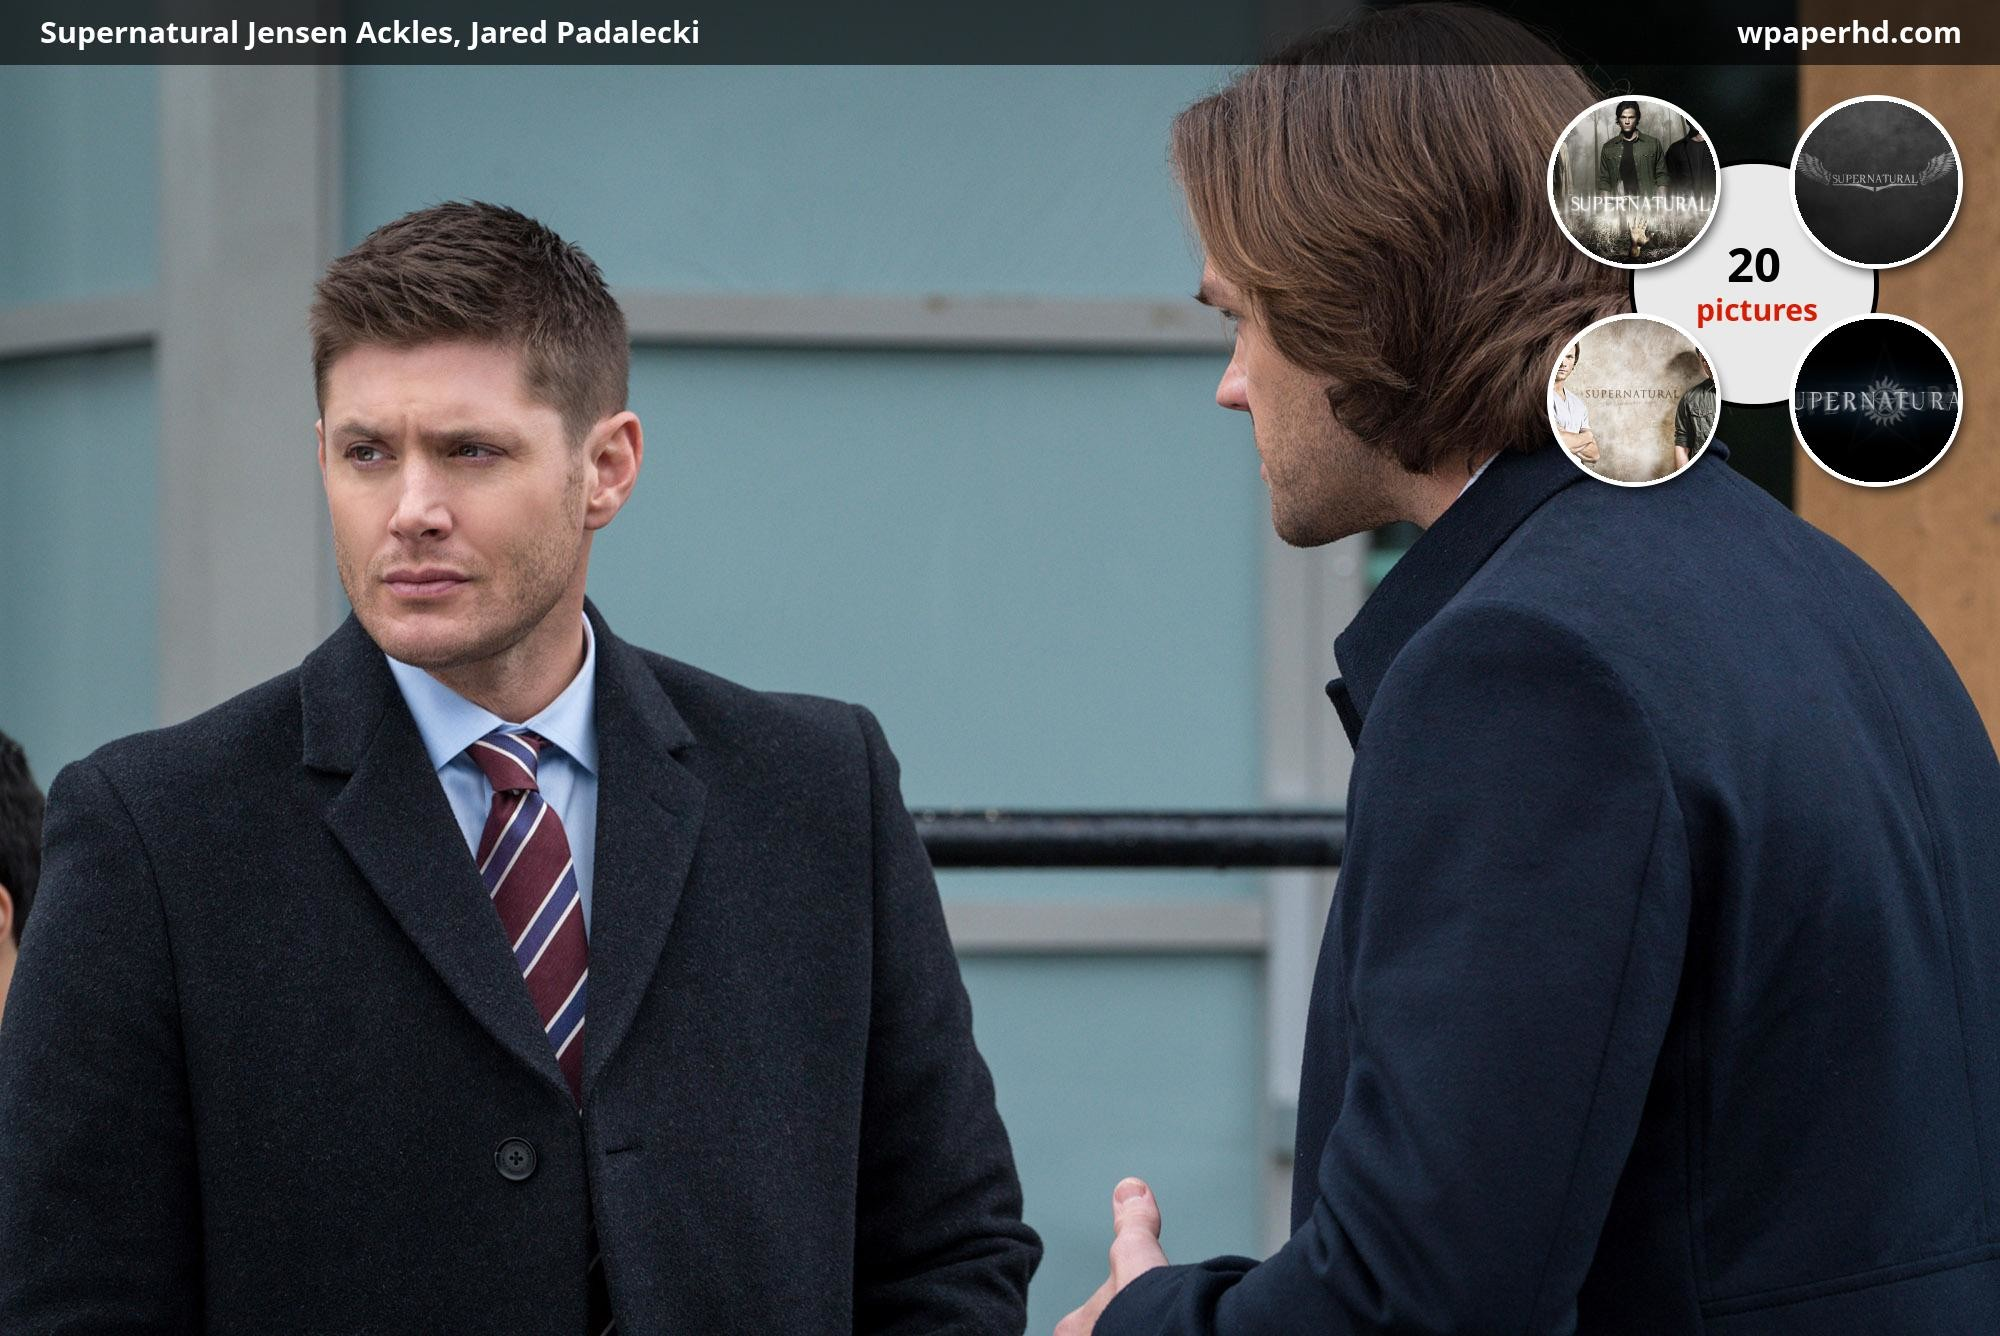 … Jensen Ackles, Jared Padalecki wallpaper, where you can download this  picture in Original size and …